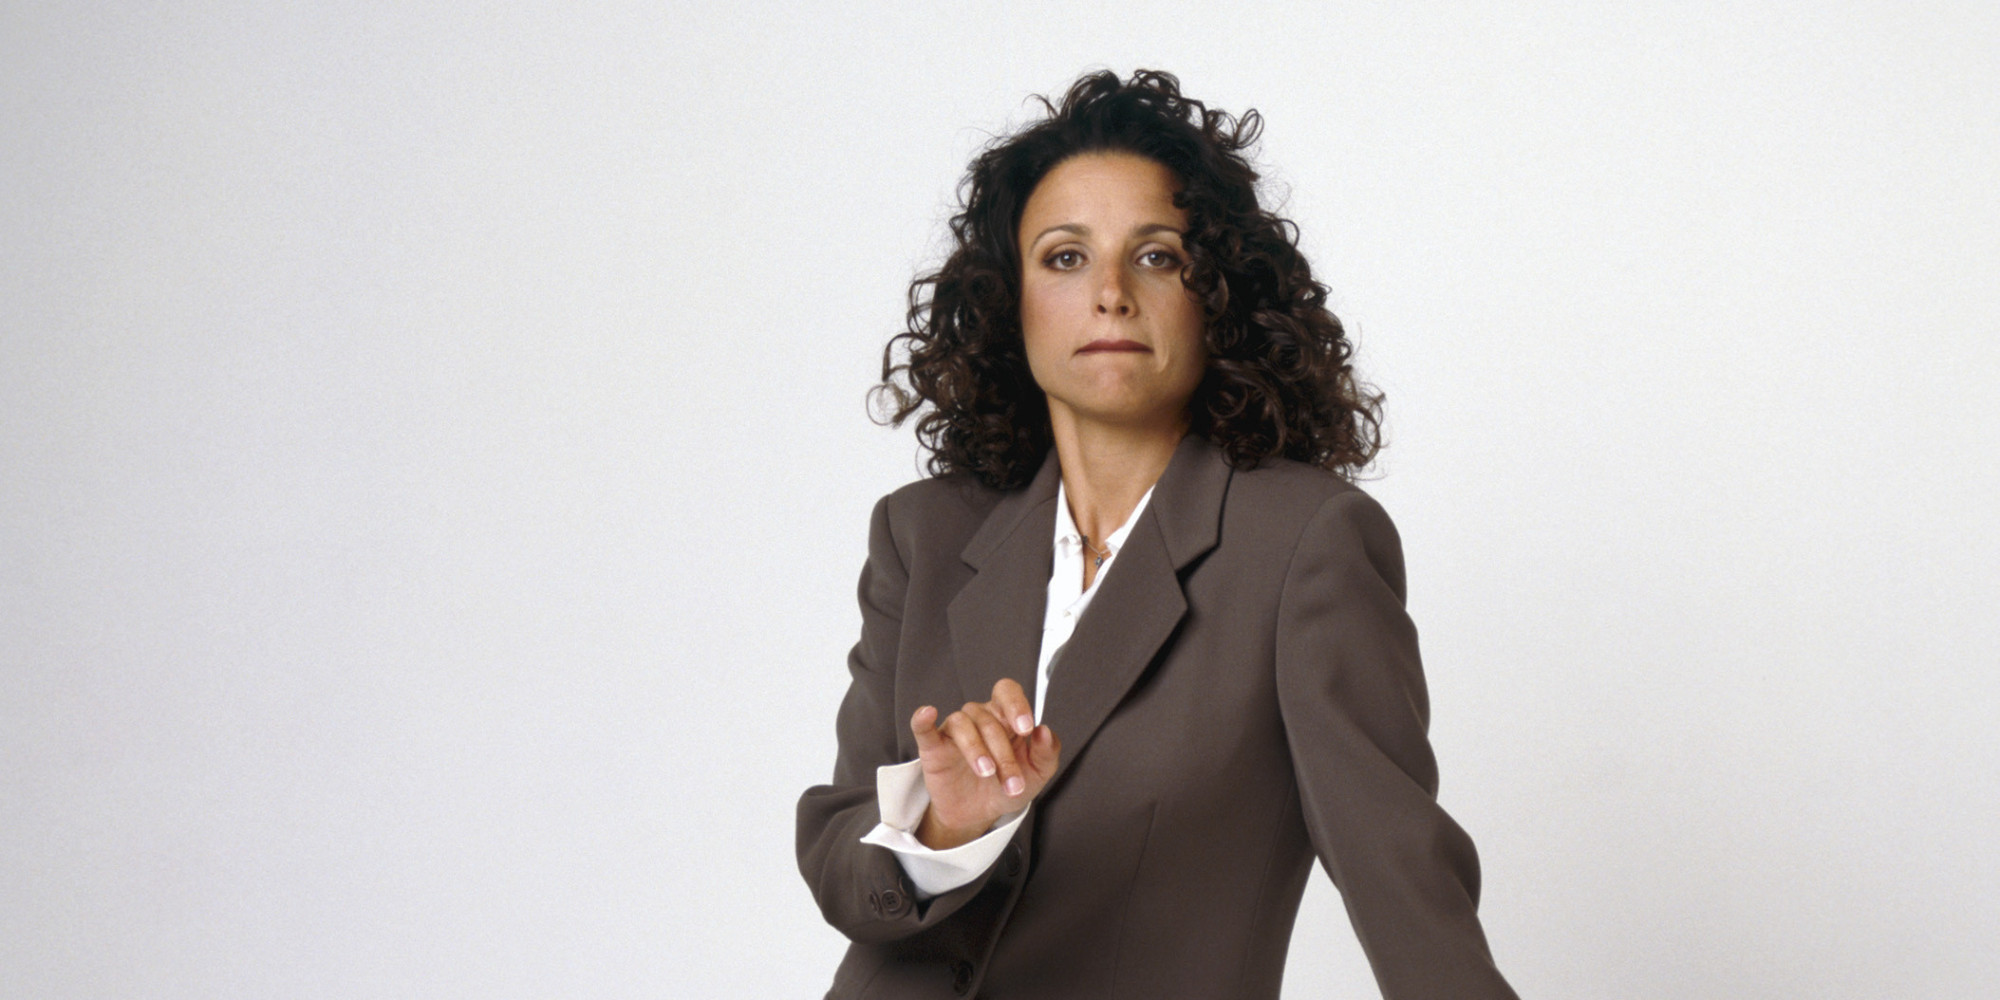 6 Outfits For The Elaine Benes Of 2014 | Bianca Heyward